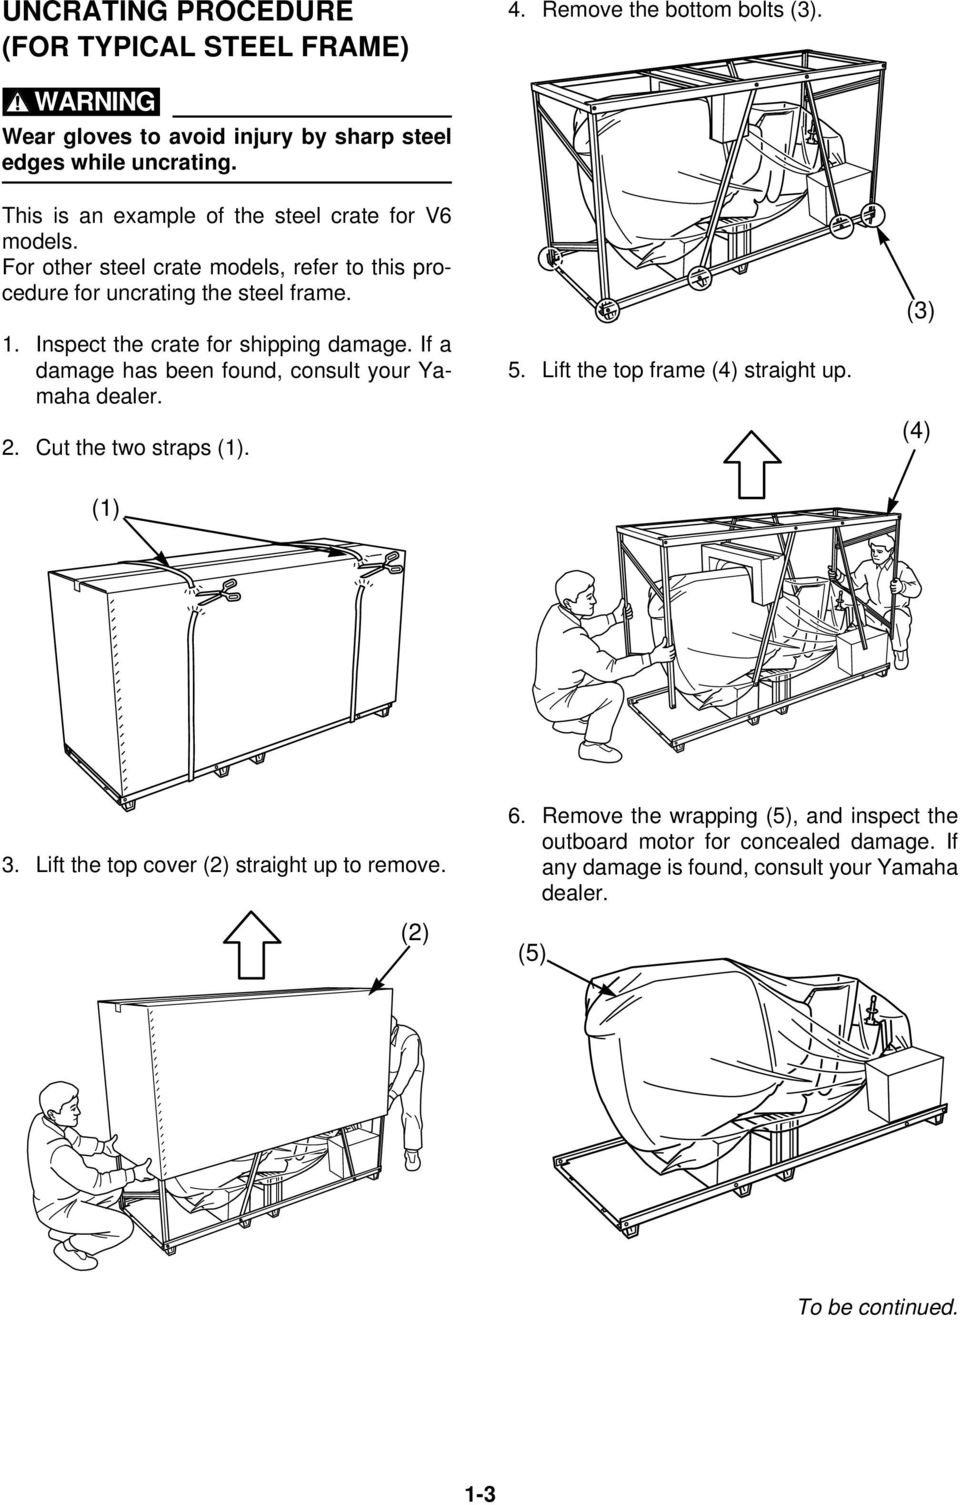 Rigging Guide Worldwide Edition Pdf Yamaha F350 Command Link Wiring Diagram Inspect The Crate For Shipping Damage If A Has Been Found Consult Your